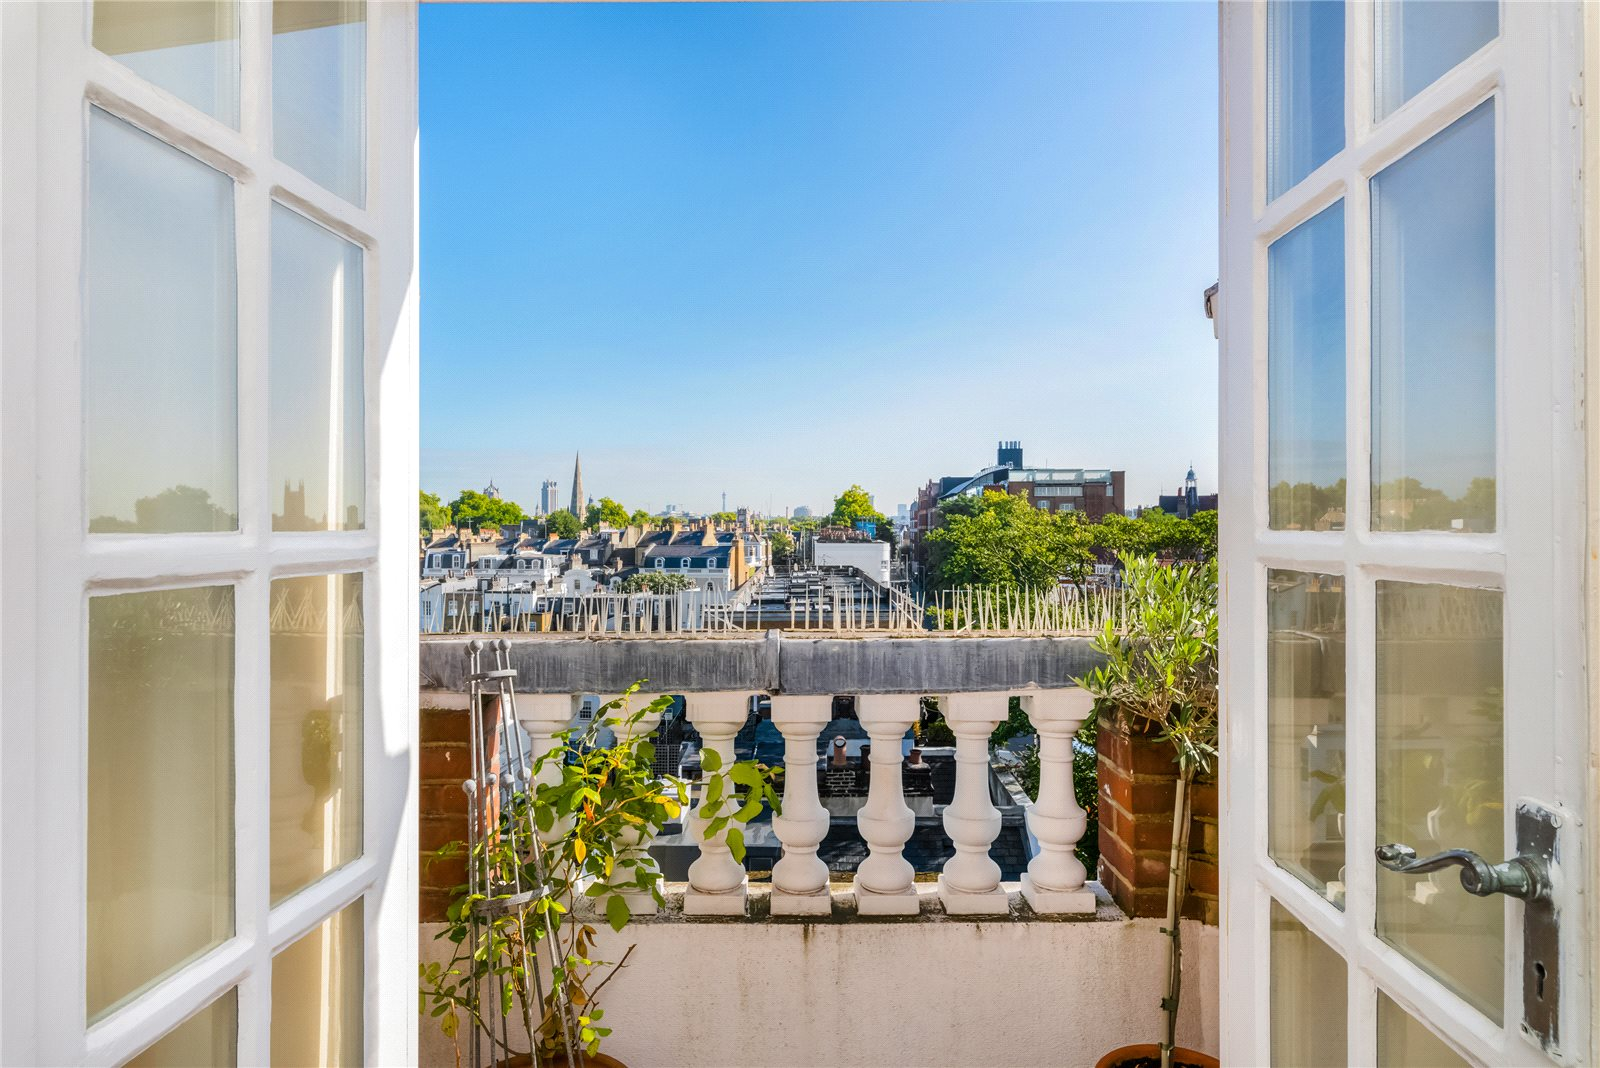 Appartement pour l Vente à Cranley Gardens, South Kensington, London, SW7 South Kensington, London, Angleterre